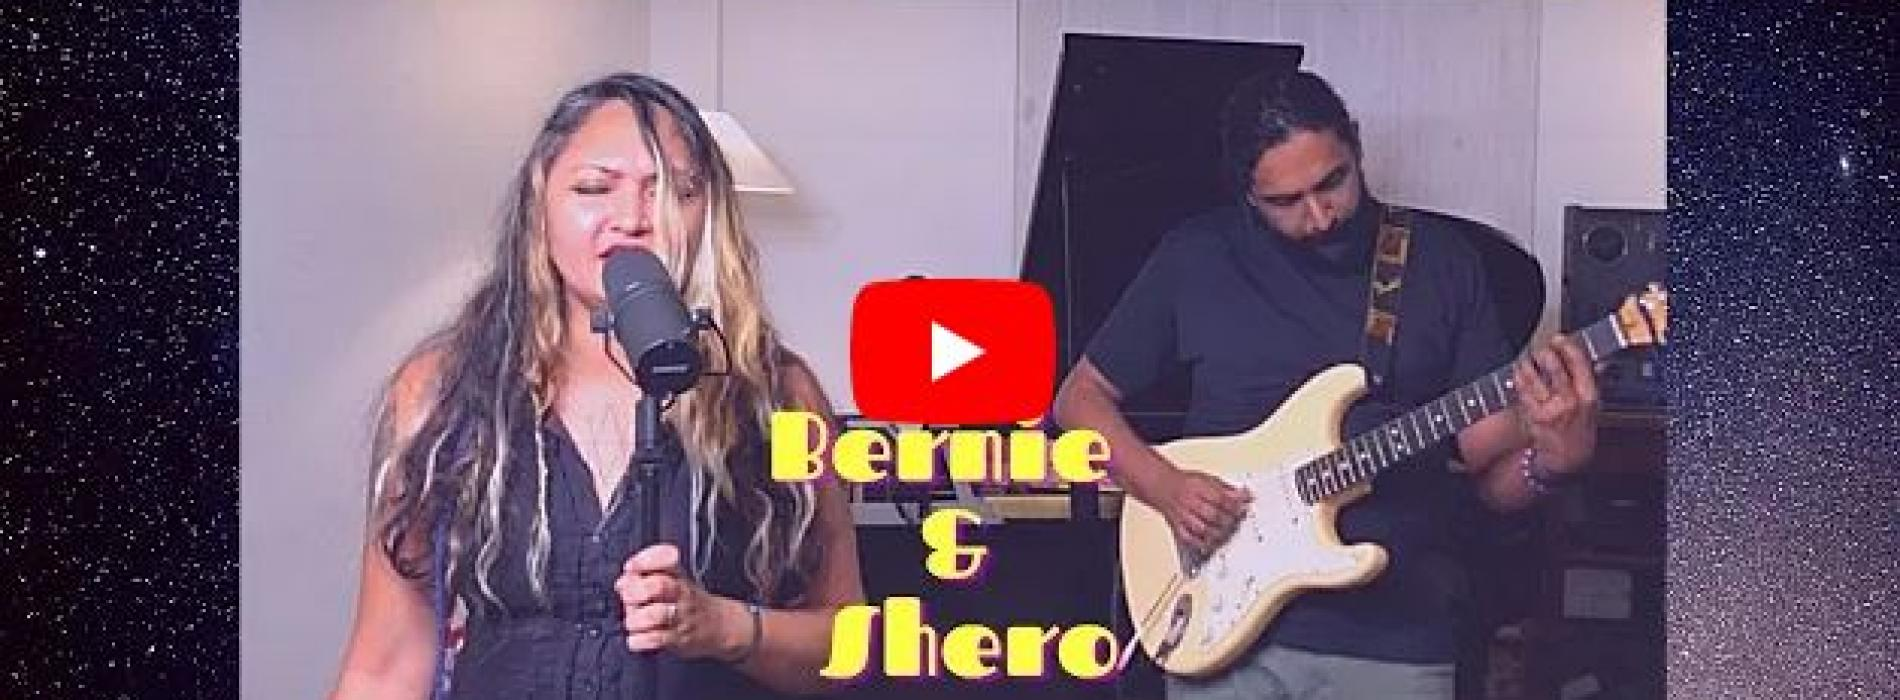 New Music : Drinking In the Day – Bernie & Sherry (Cover by Elise LeGrow)